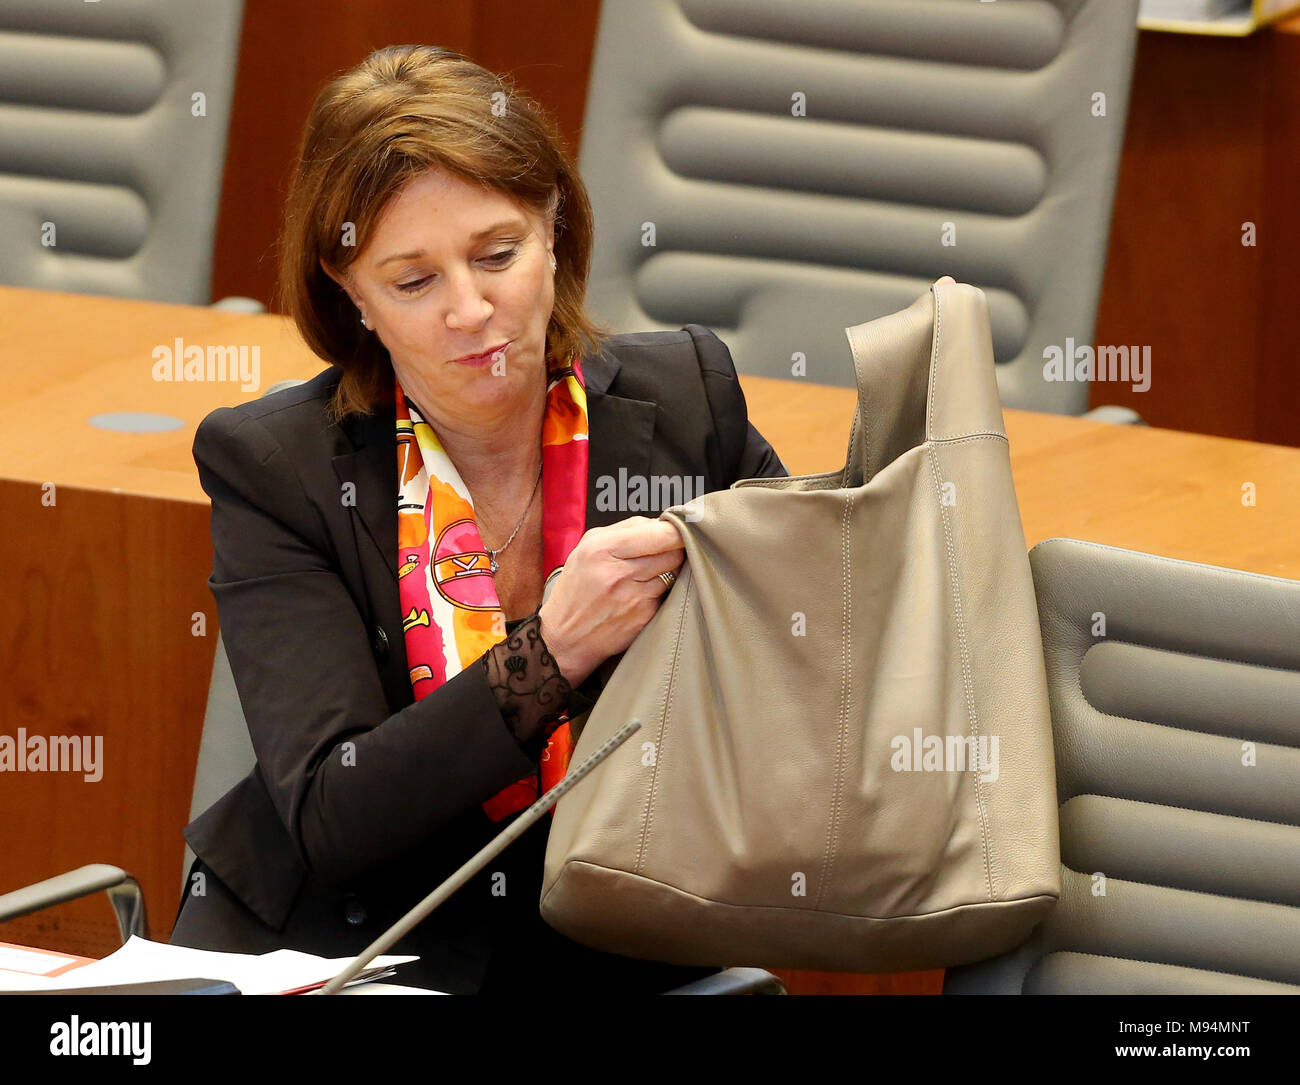 22 March 2018, Germany, Duesseldorf: North Rhine Westphalia's (NRW) Minister for Schools, Yvonne Gebauer, of the Free Democratic Party (FDP) picking up her bag during the session of the north rhine-westphalian state parliament. Topics of the session are rules for the state's art foundation and the introduction of a legislation amendment in schools for nine years of school until A-levels. Photo: Roland Weihrauch/dpa - Stock Image